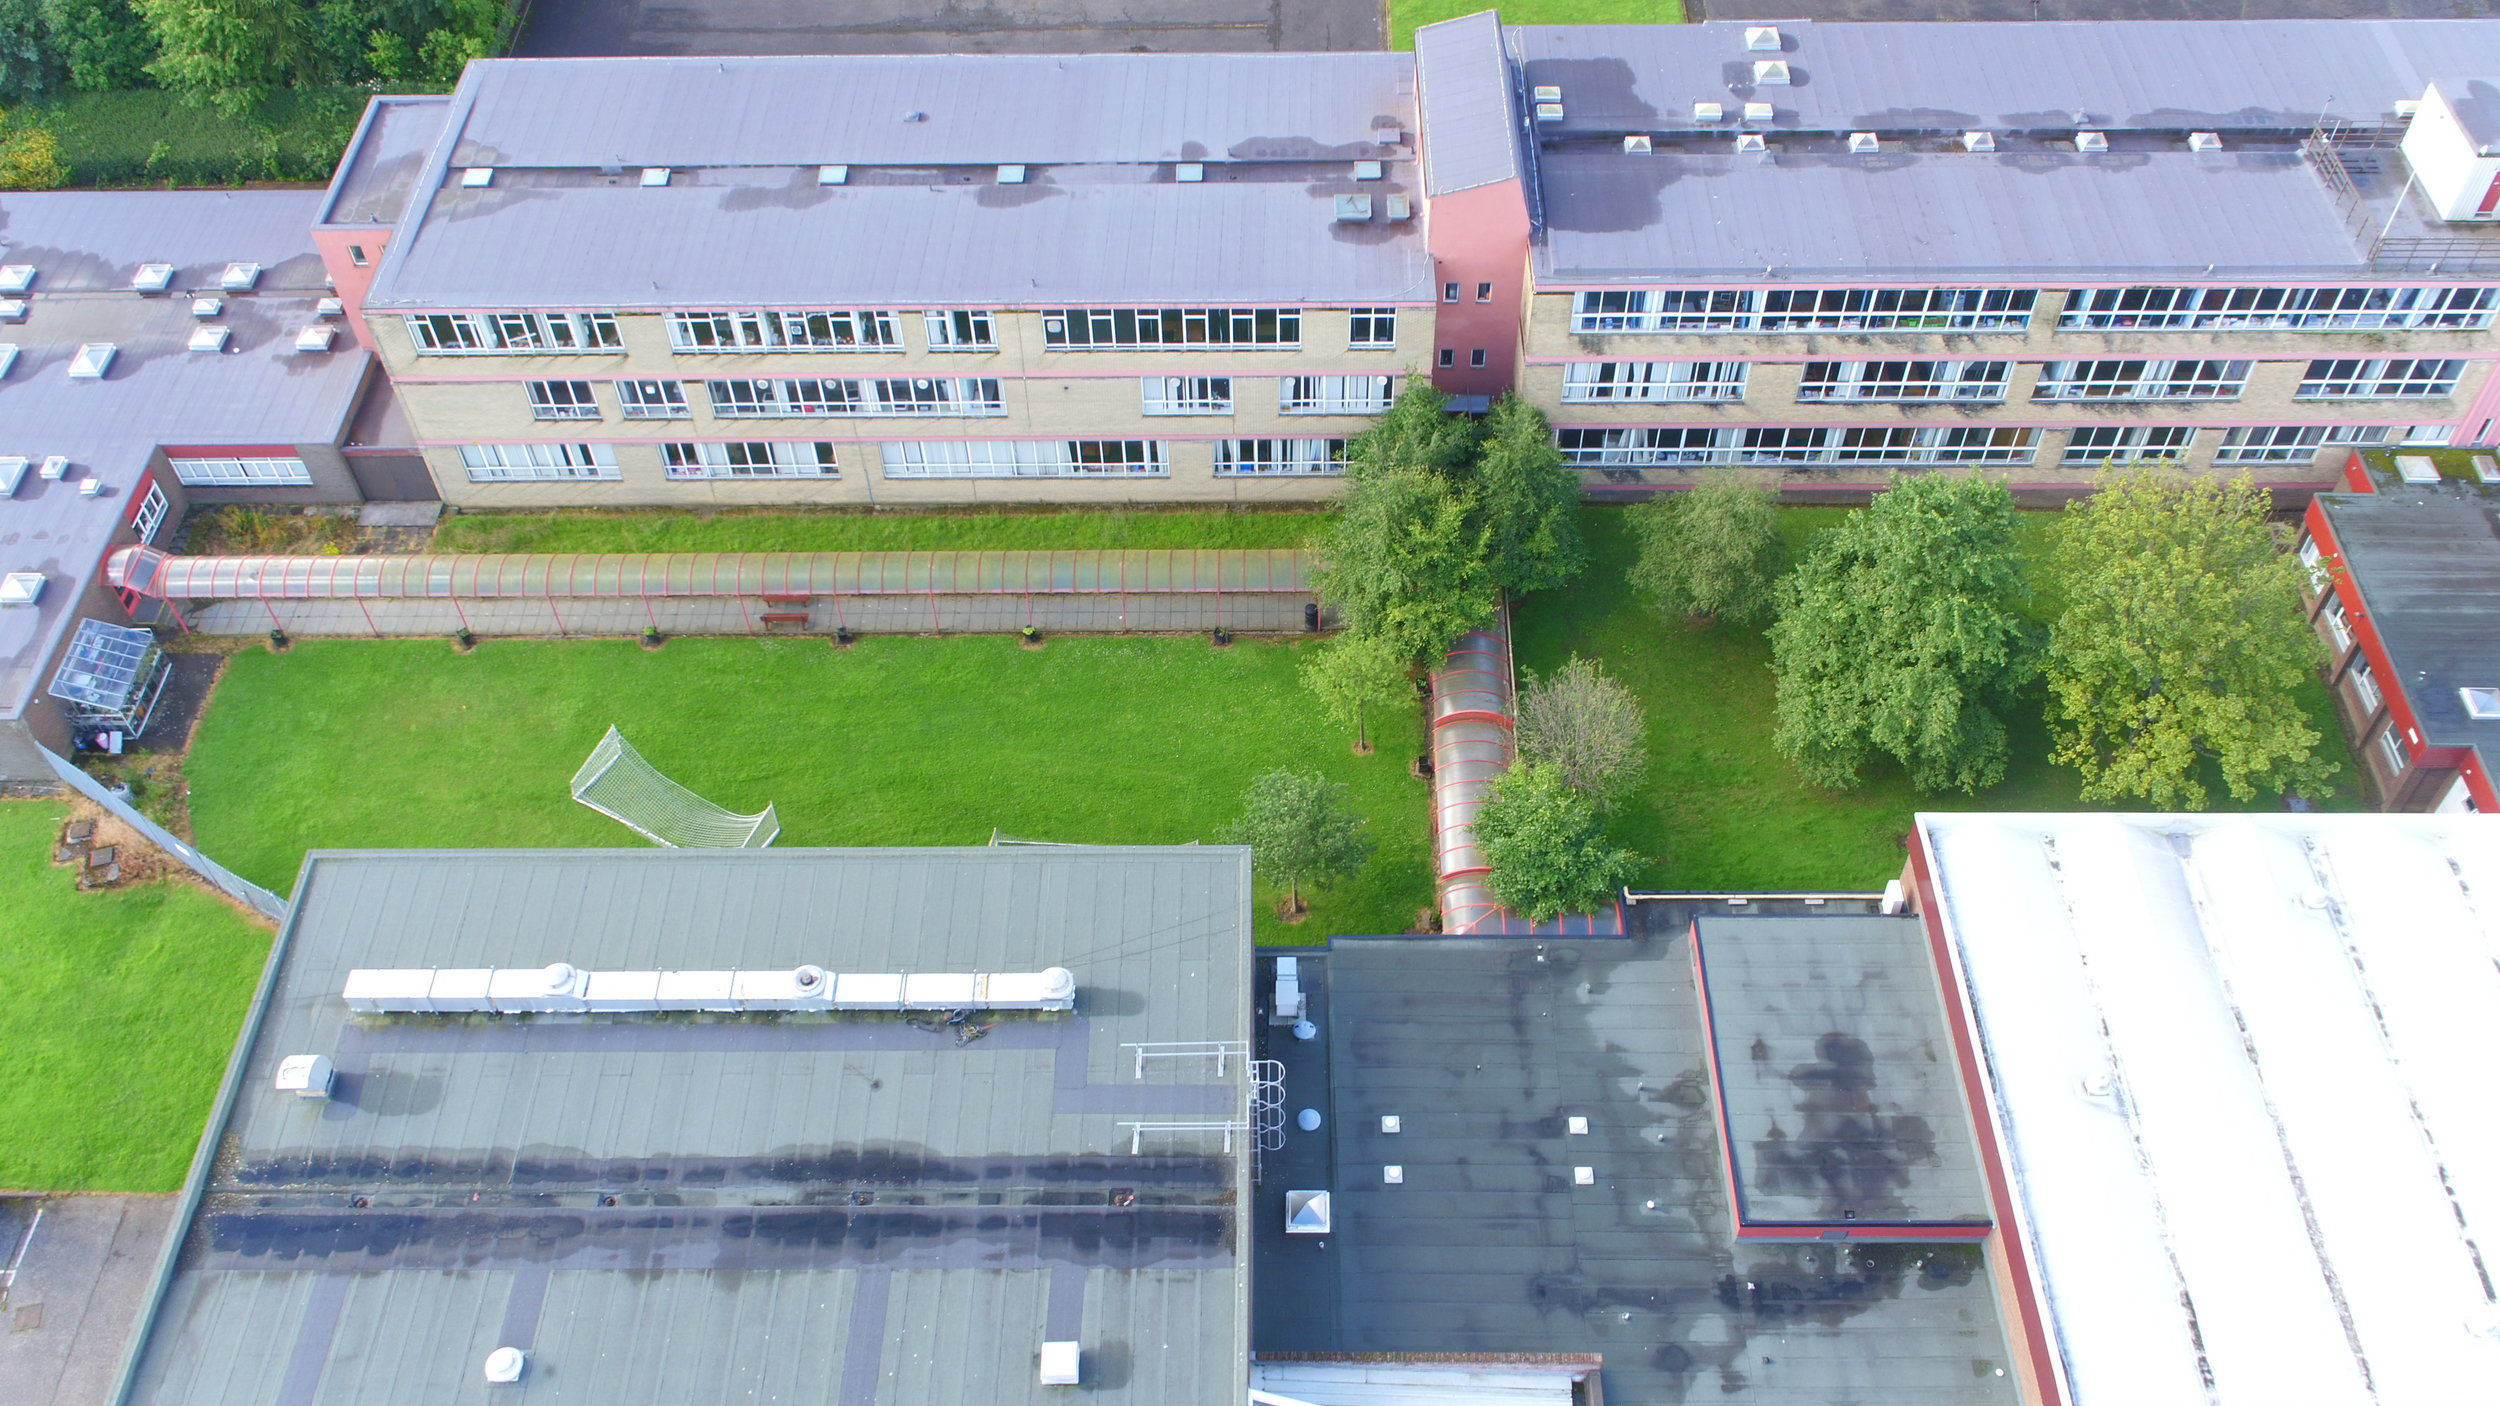 This survey was in two parts: a complete topographical and building survey and a drone fly-over to create a 3D point cloud model of the entire site. The topographical survey was conducted using two Trimble GNSS RTK rovers and a Trimble S-Series total station.